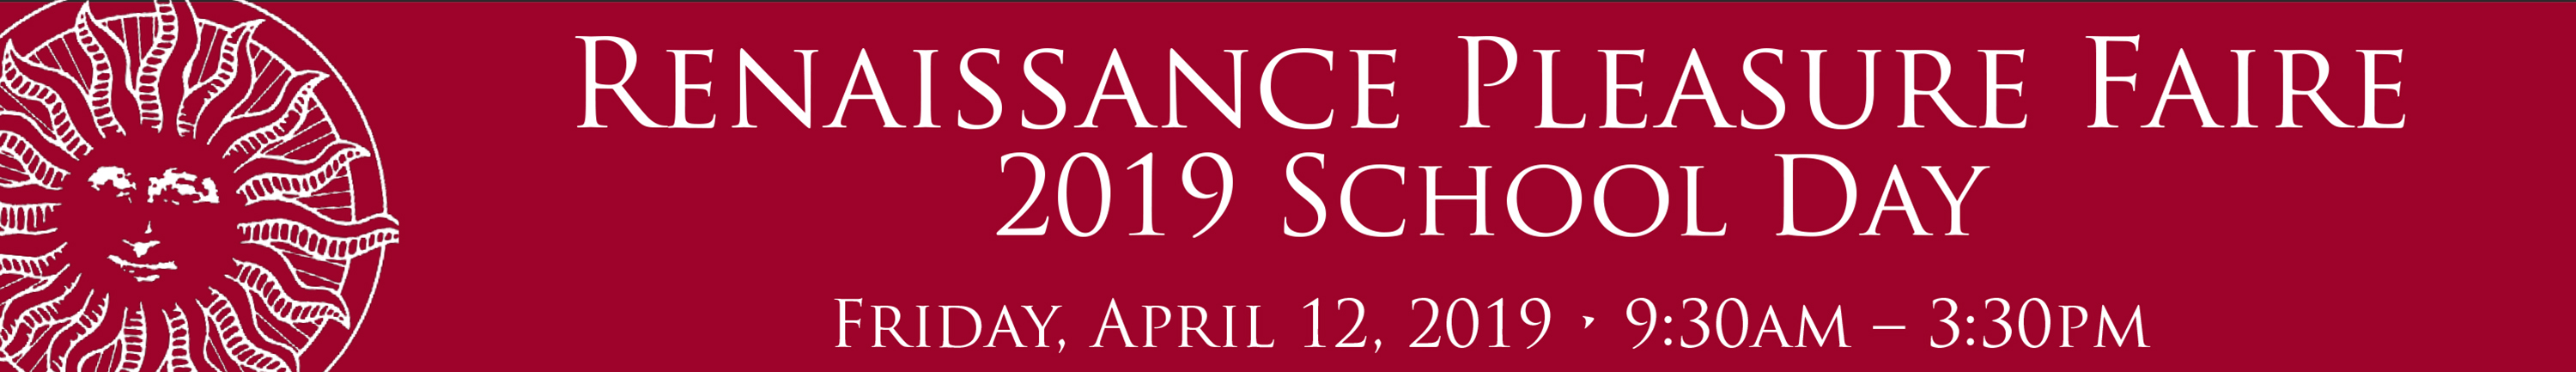 logo: Renaissance Pleasure Faire School Day 2019: Friday, April 12, 2019 - 9:30AM - 3:30PM